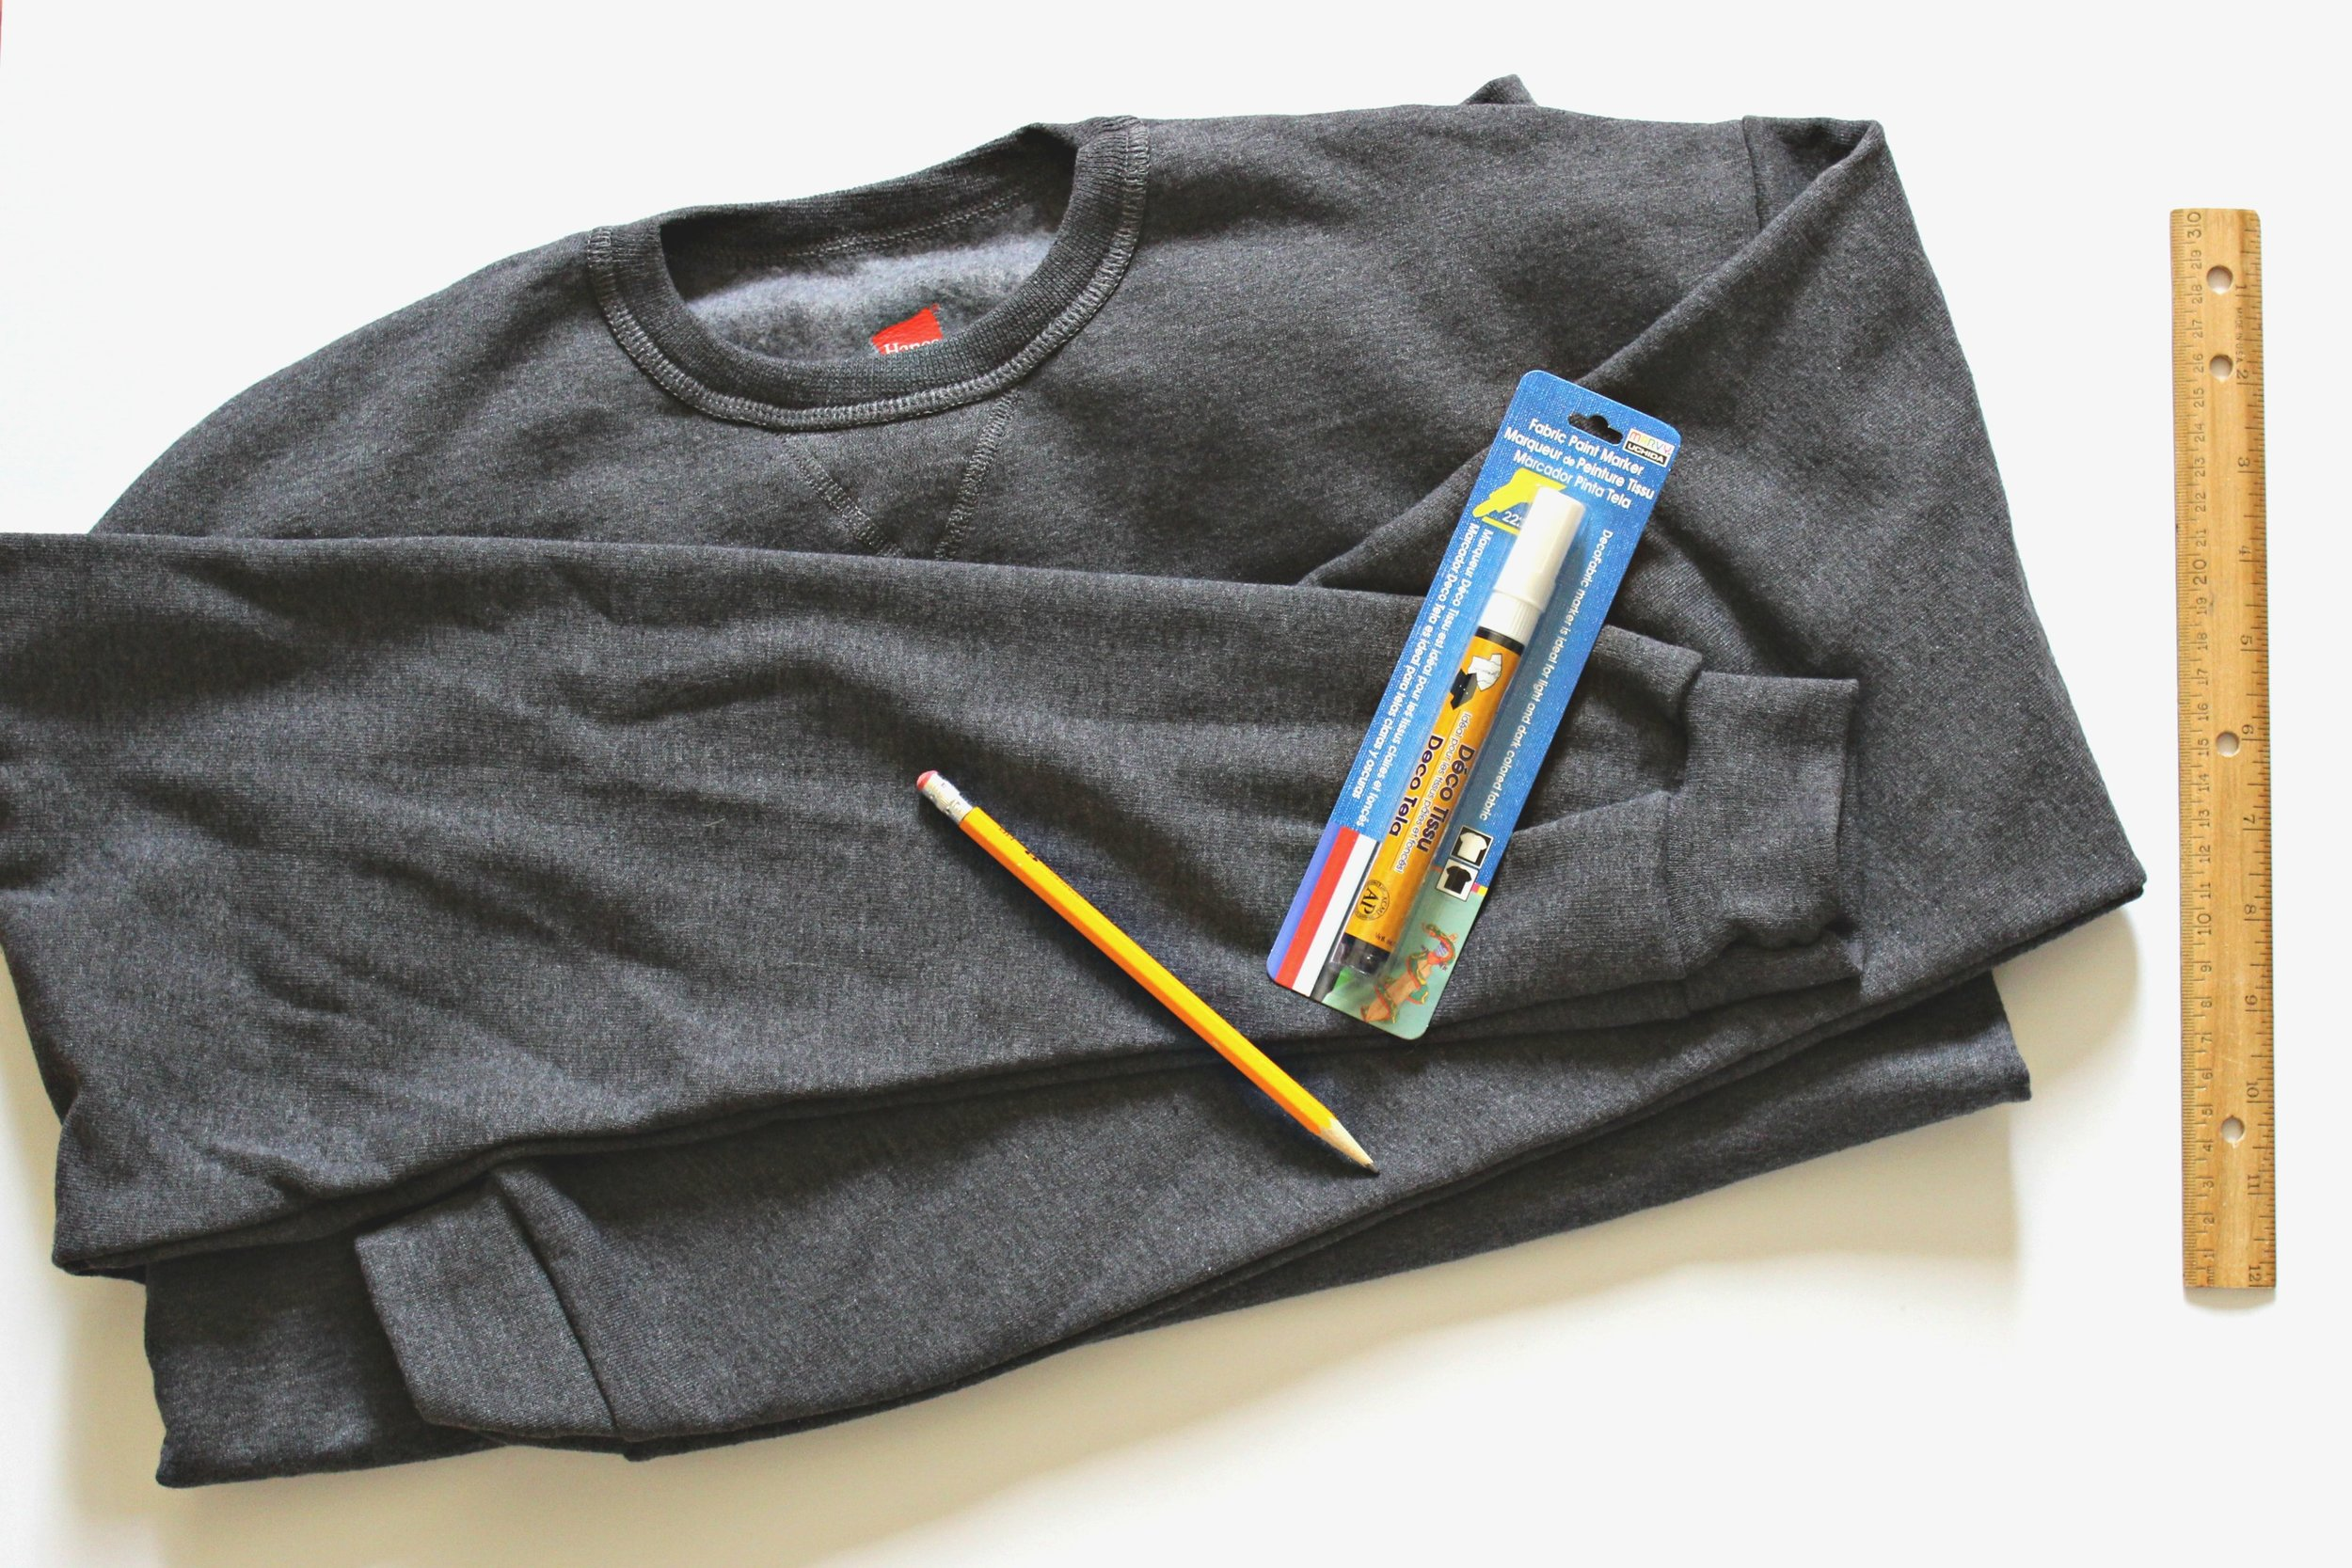 How To Make Your Own Graphic Sweatshirt // all together this project costs $12 and takes about 15 minutes!